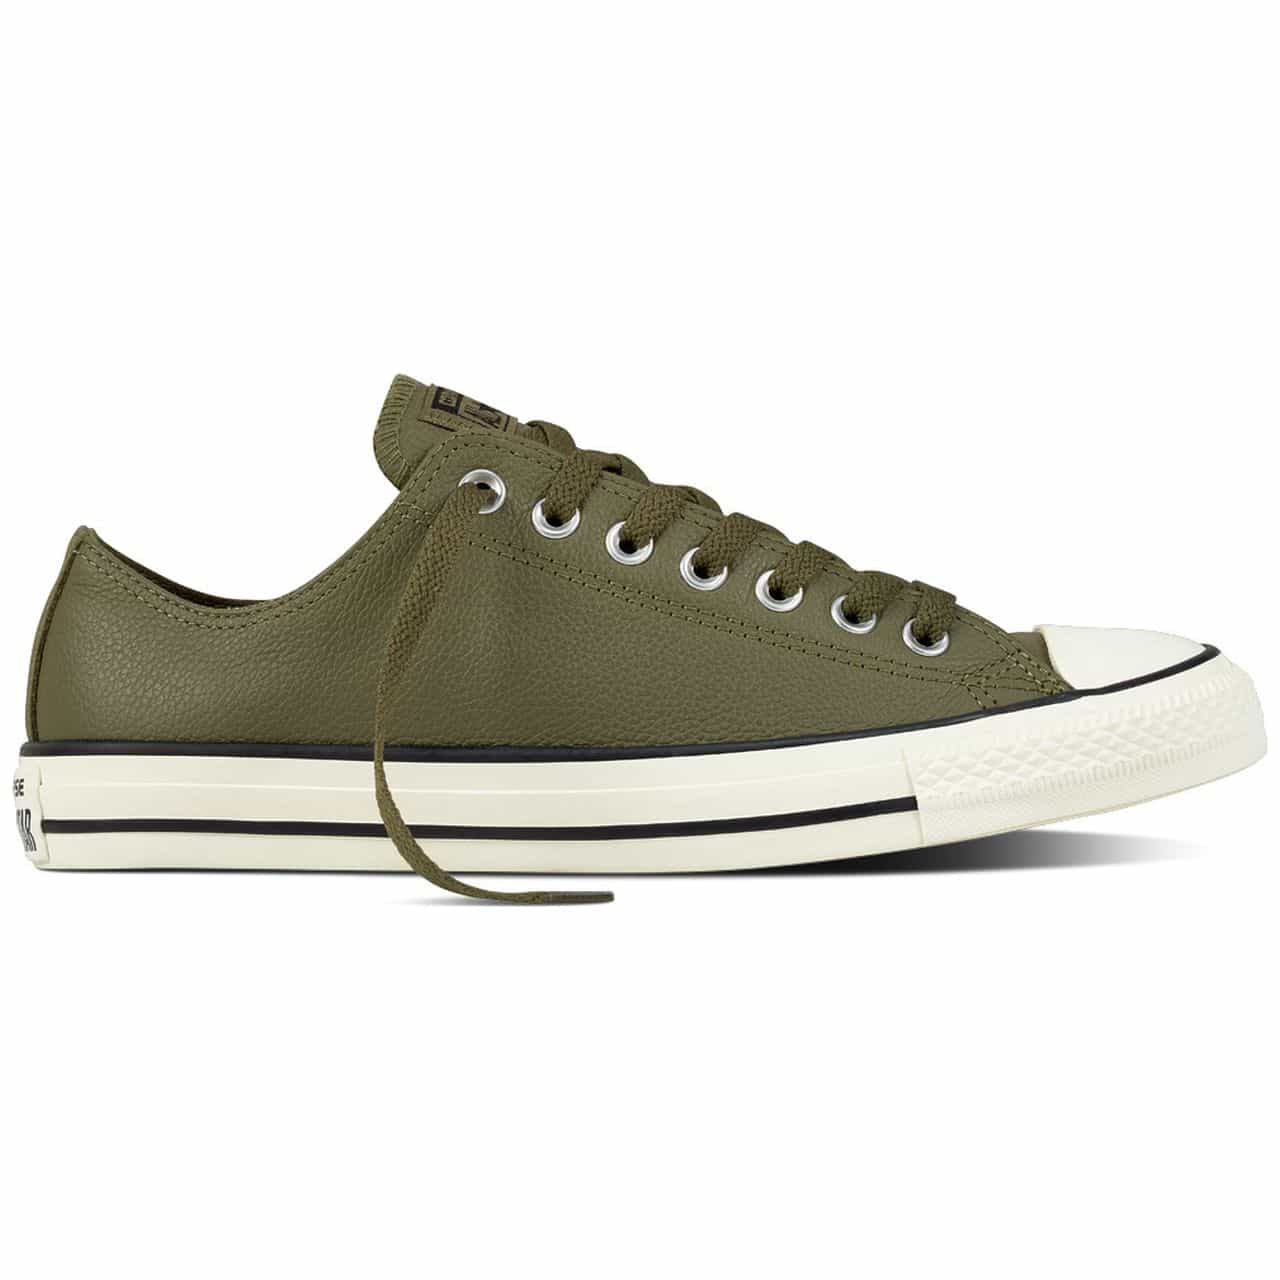 TENISI ORIGINALI CONVERSE CHUCK TAYLOR AS OX - 157568C